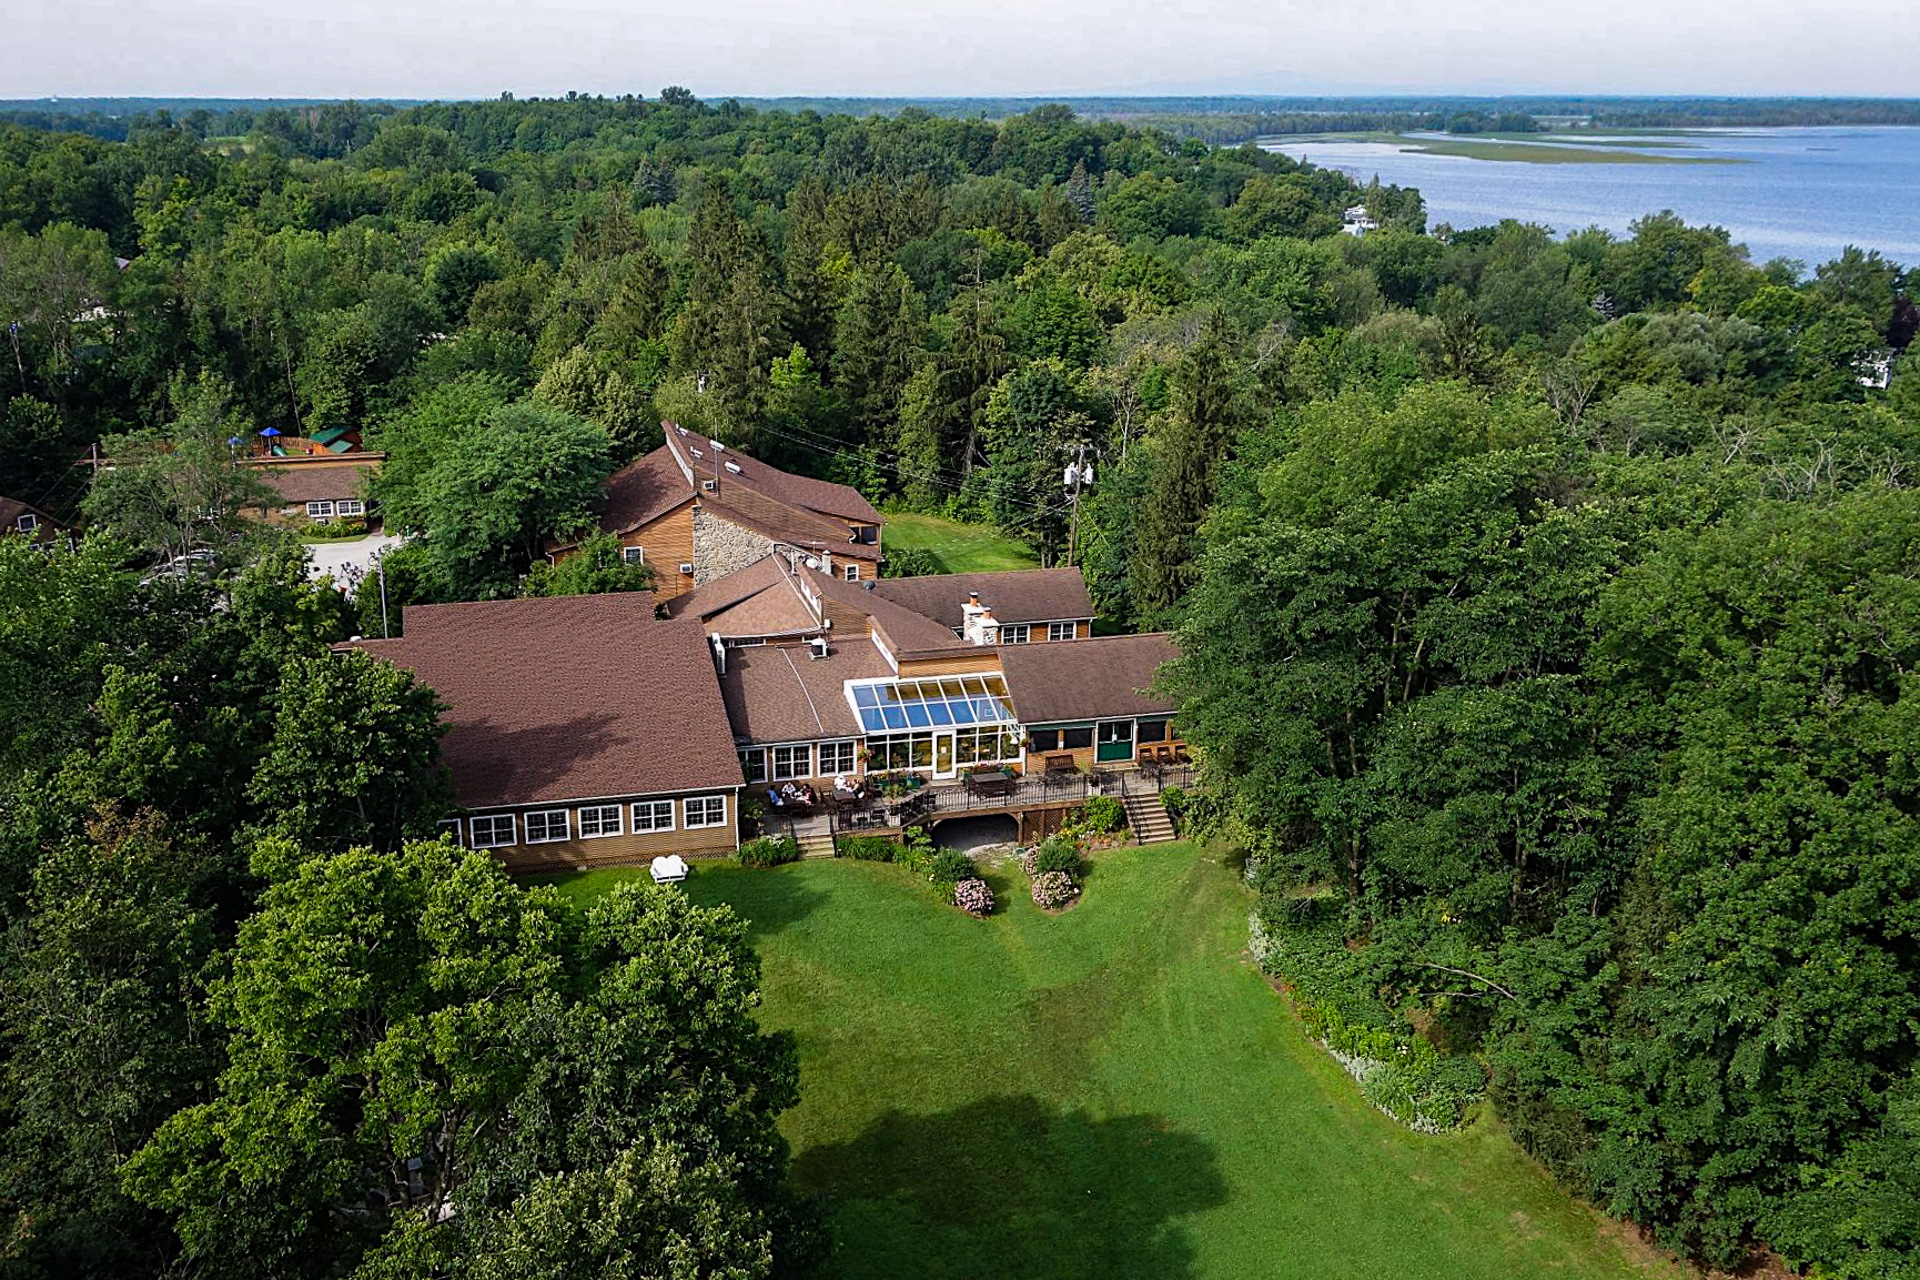 aerial view of Tyler Place Family Resort; Courtesy of Tyler Place Family Resort